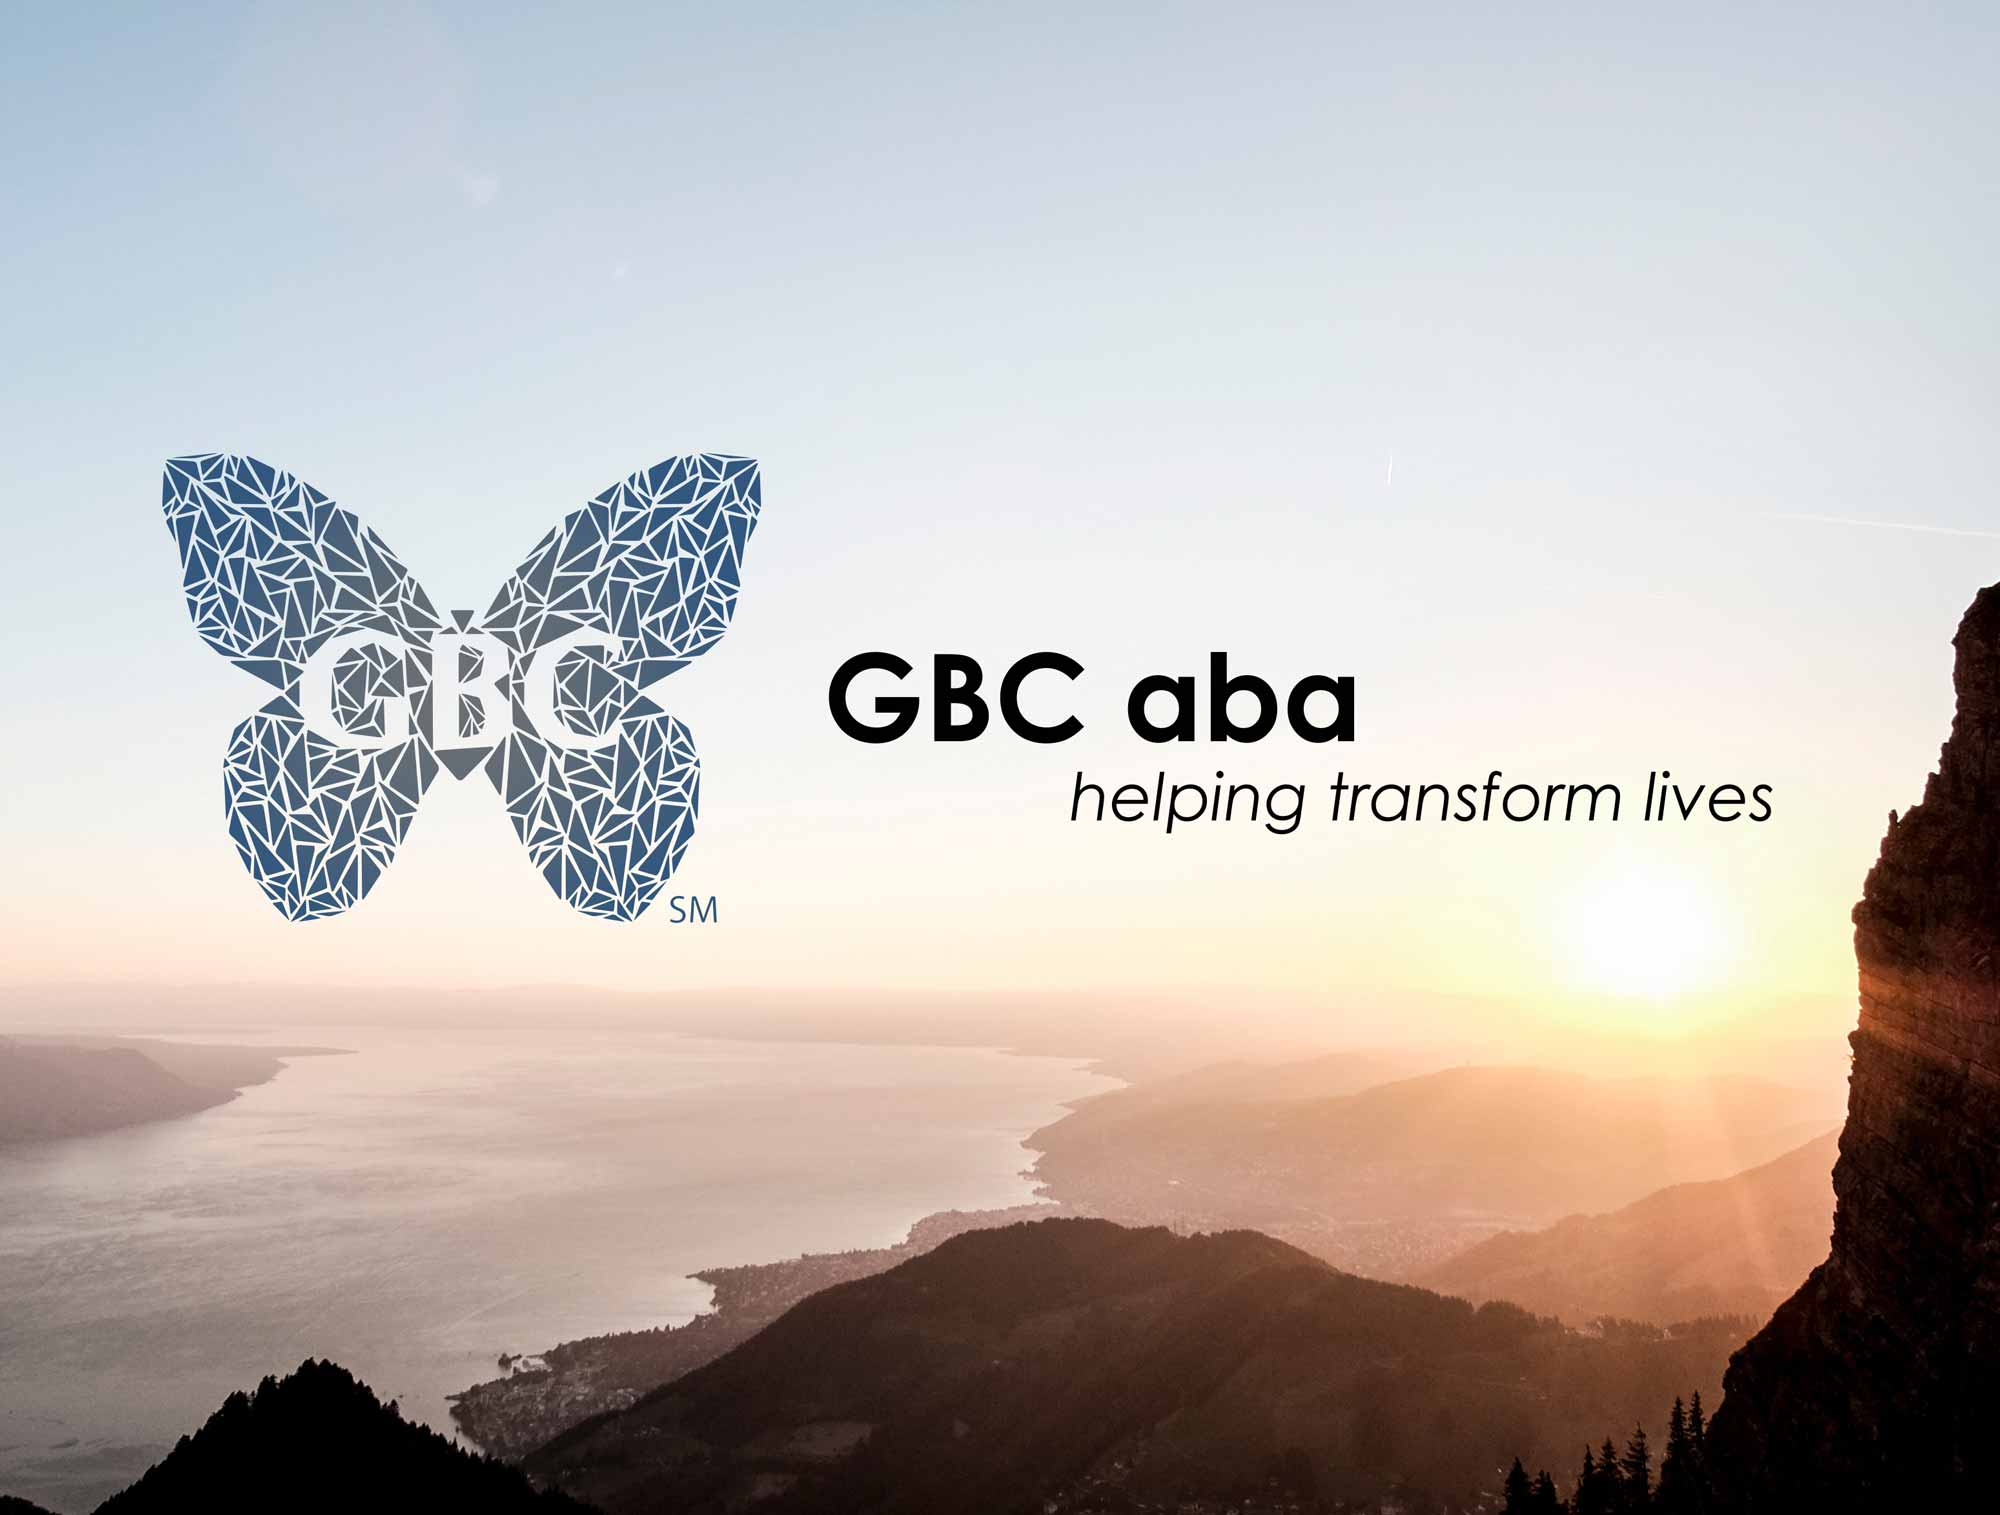 GBCaba logo over a photo of a horizon at sunset.